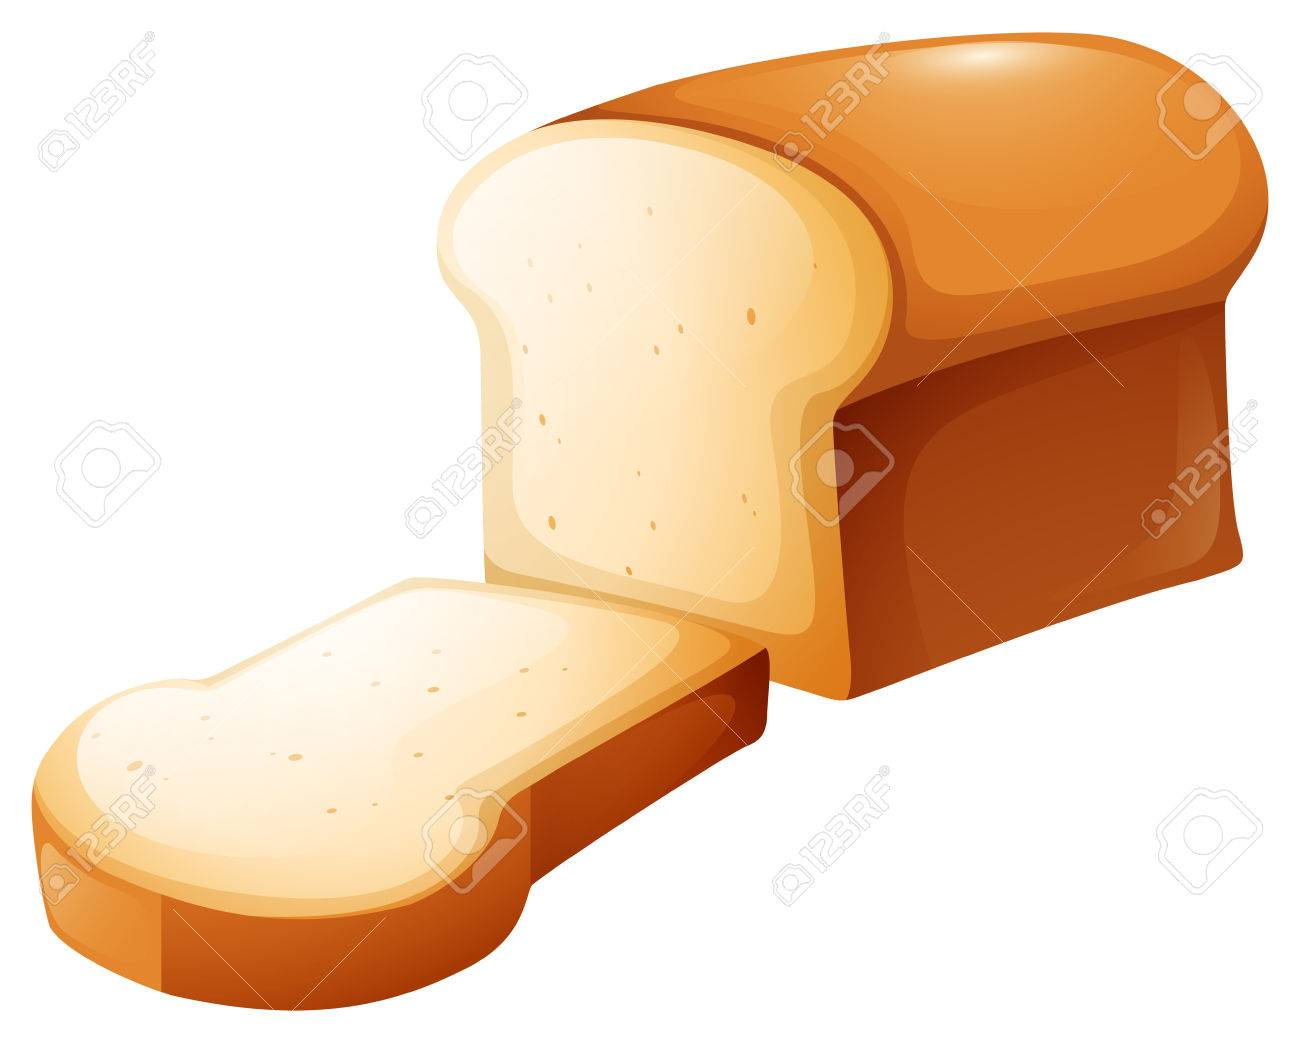 Loaf of bread and single slice illustration.